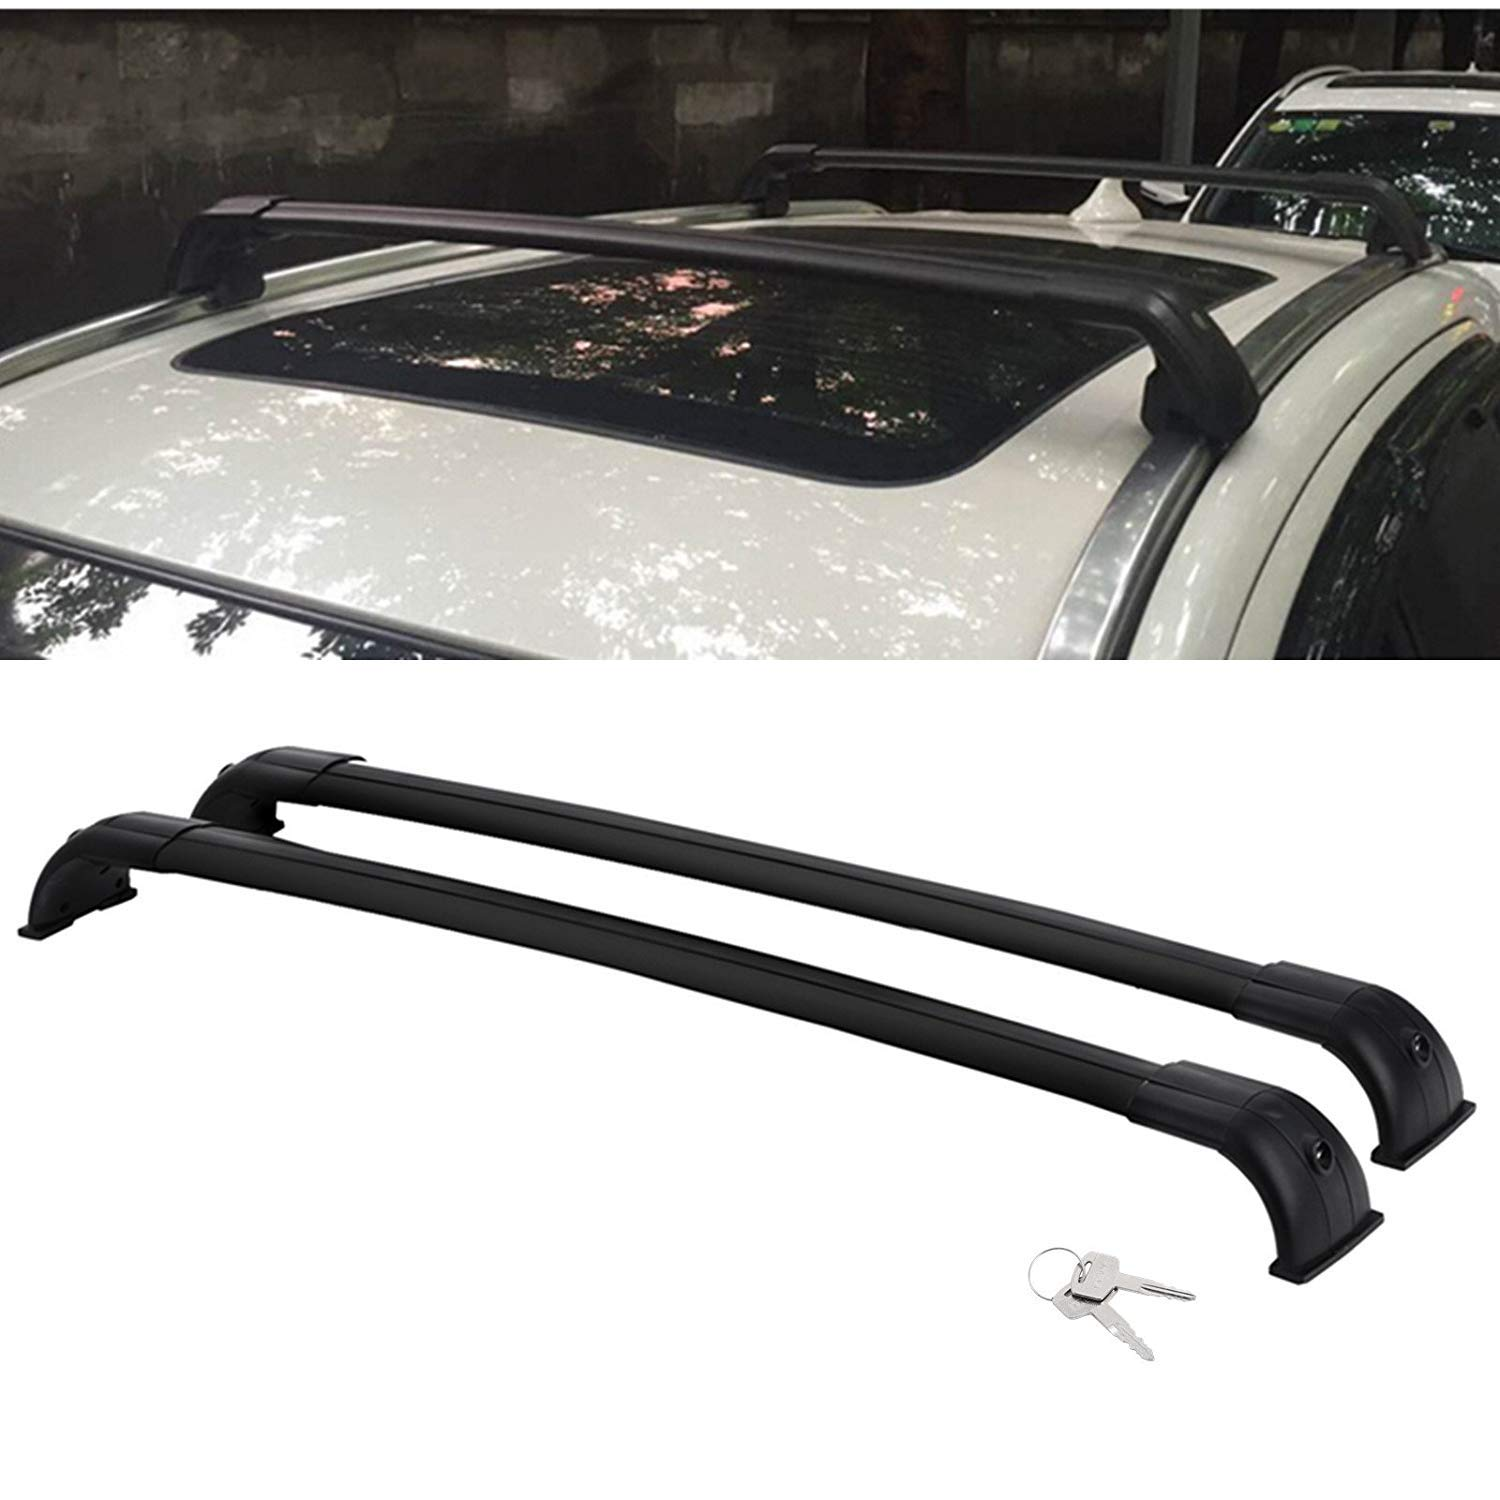 Aluminum Locking Roof Rack Crossbars for 2013 2014 2015 2016 Land Rover Discovery 4 LR4 Black Factory Roof Rails Cross bars ROKIOTOEX